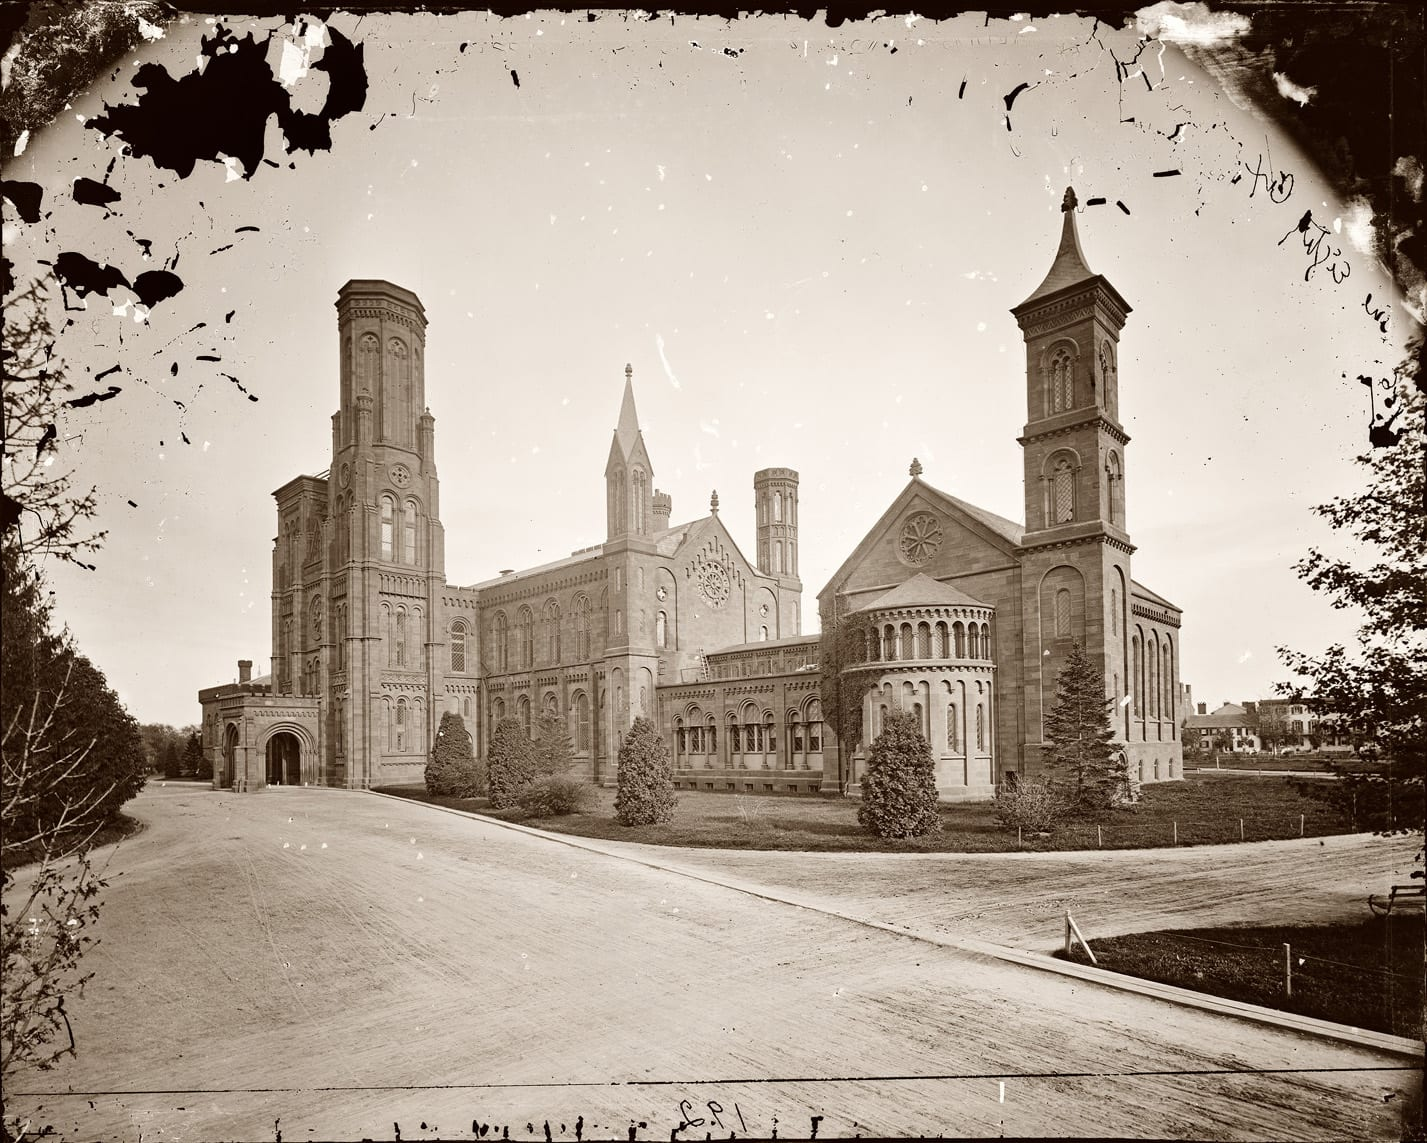 Smithsonian Castle between 1860 and 1865